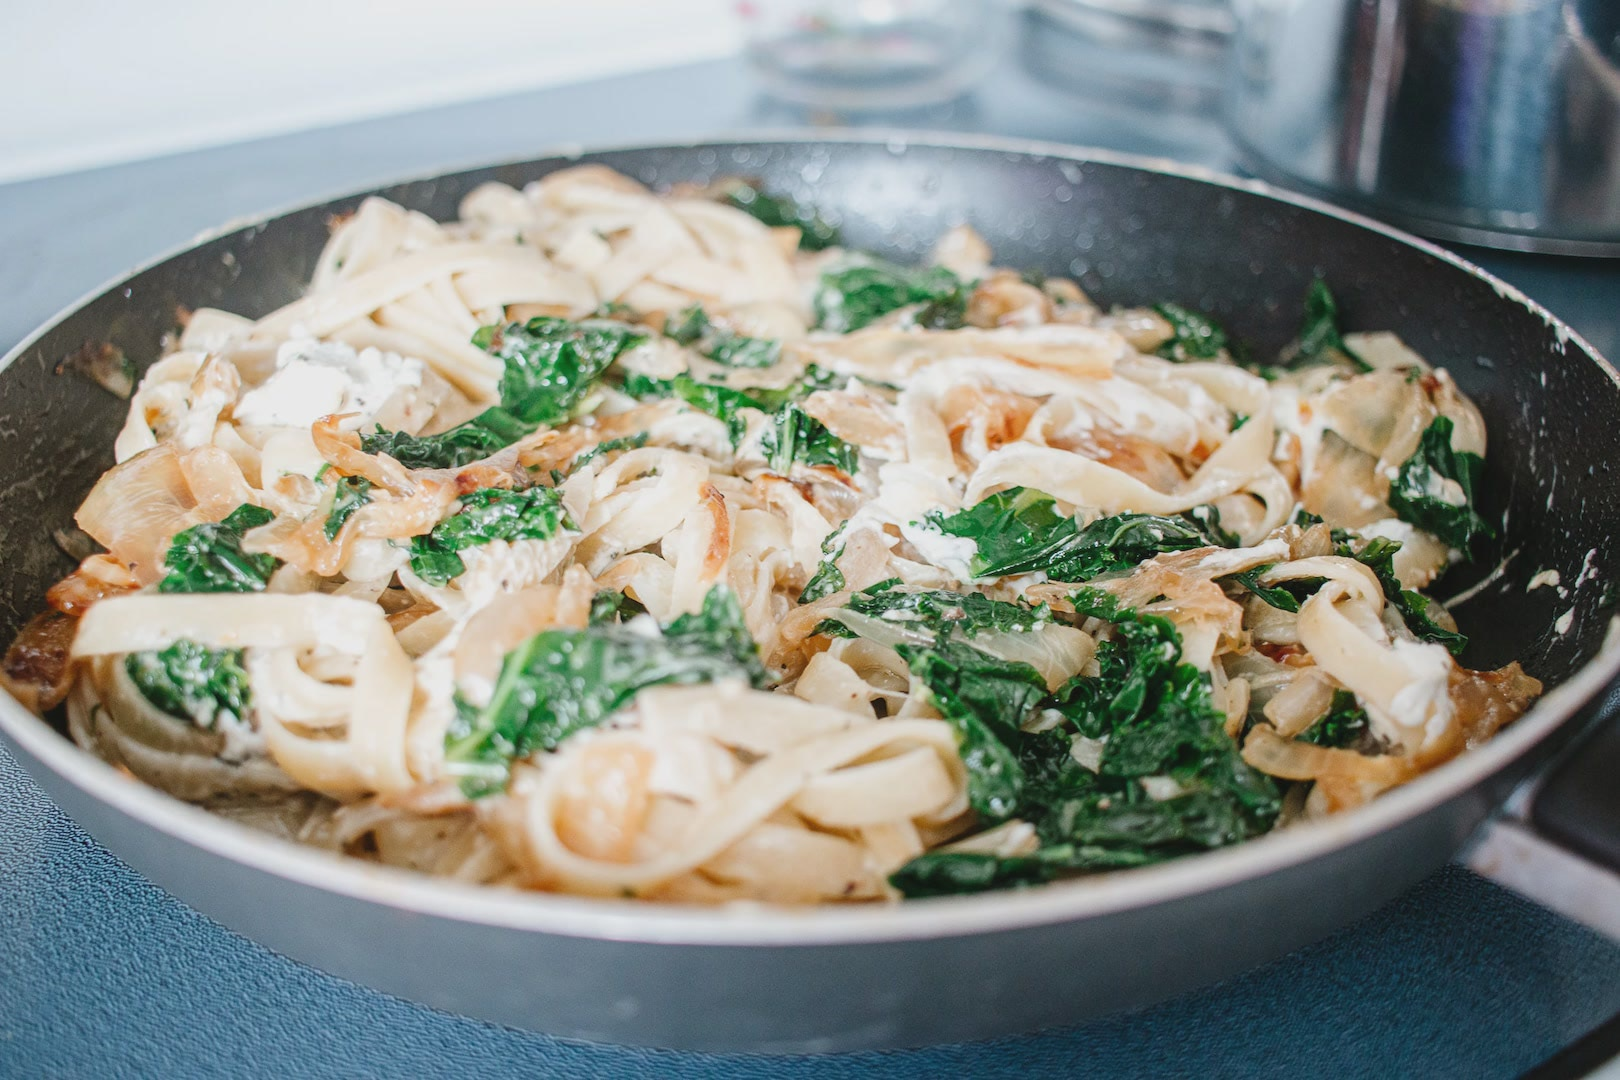 Fettuccine with Kale, Caramelized Onions and Goat Cheese